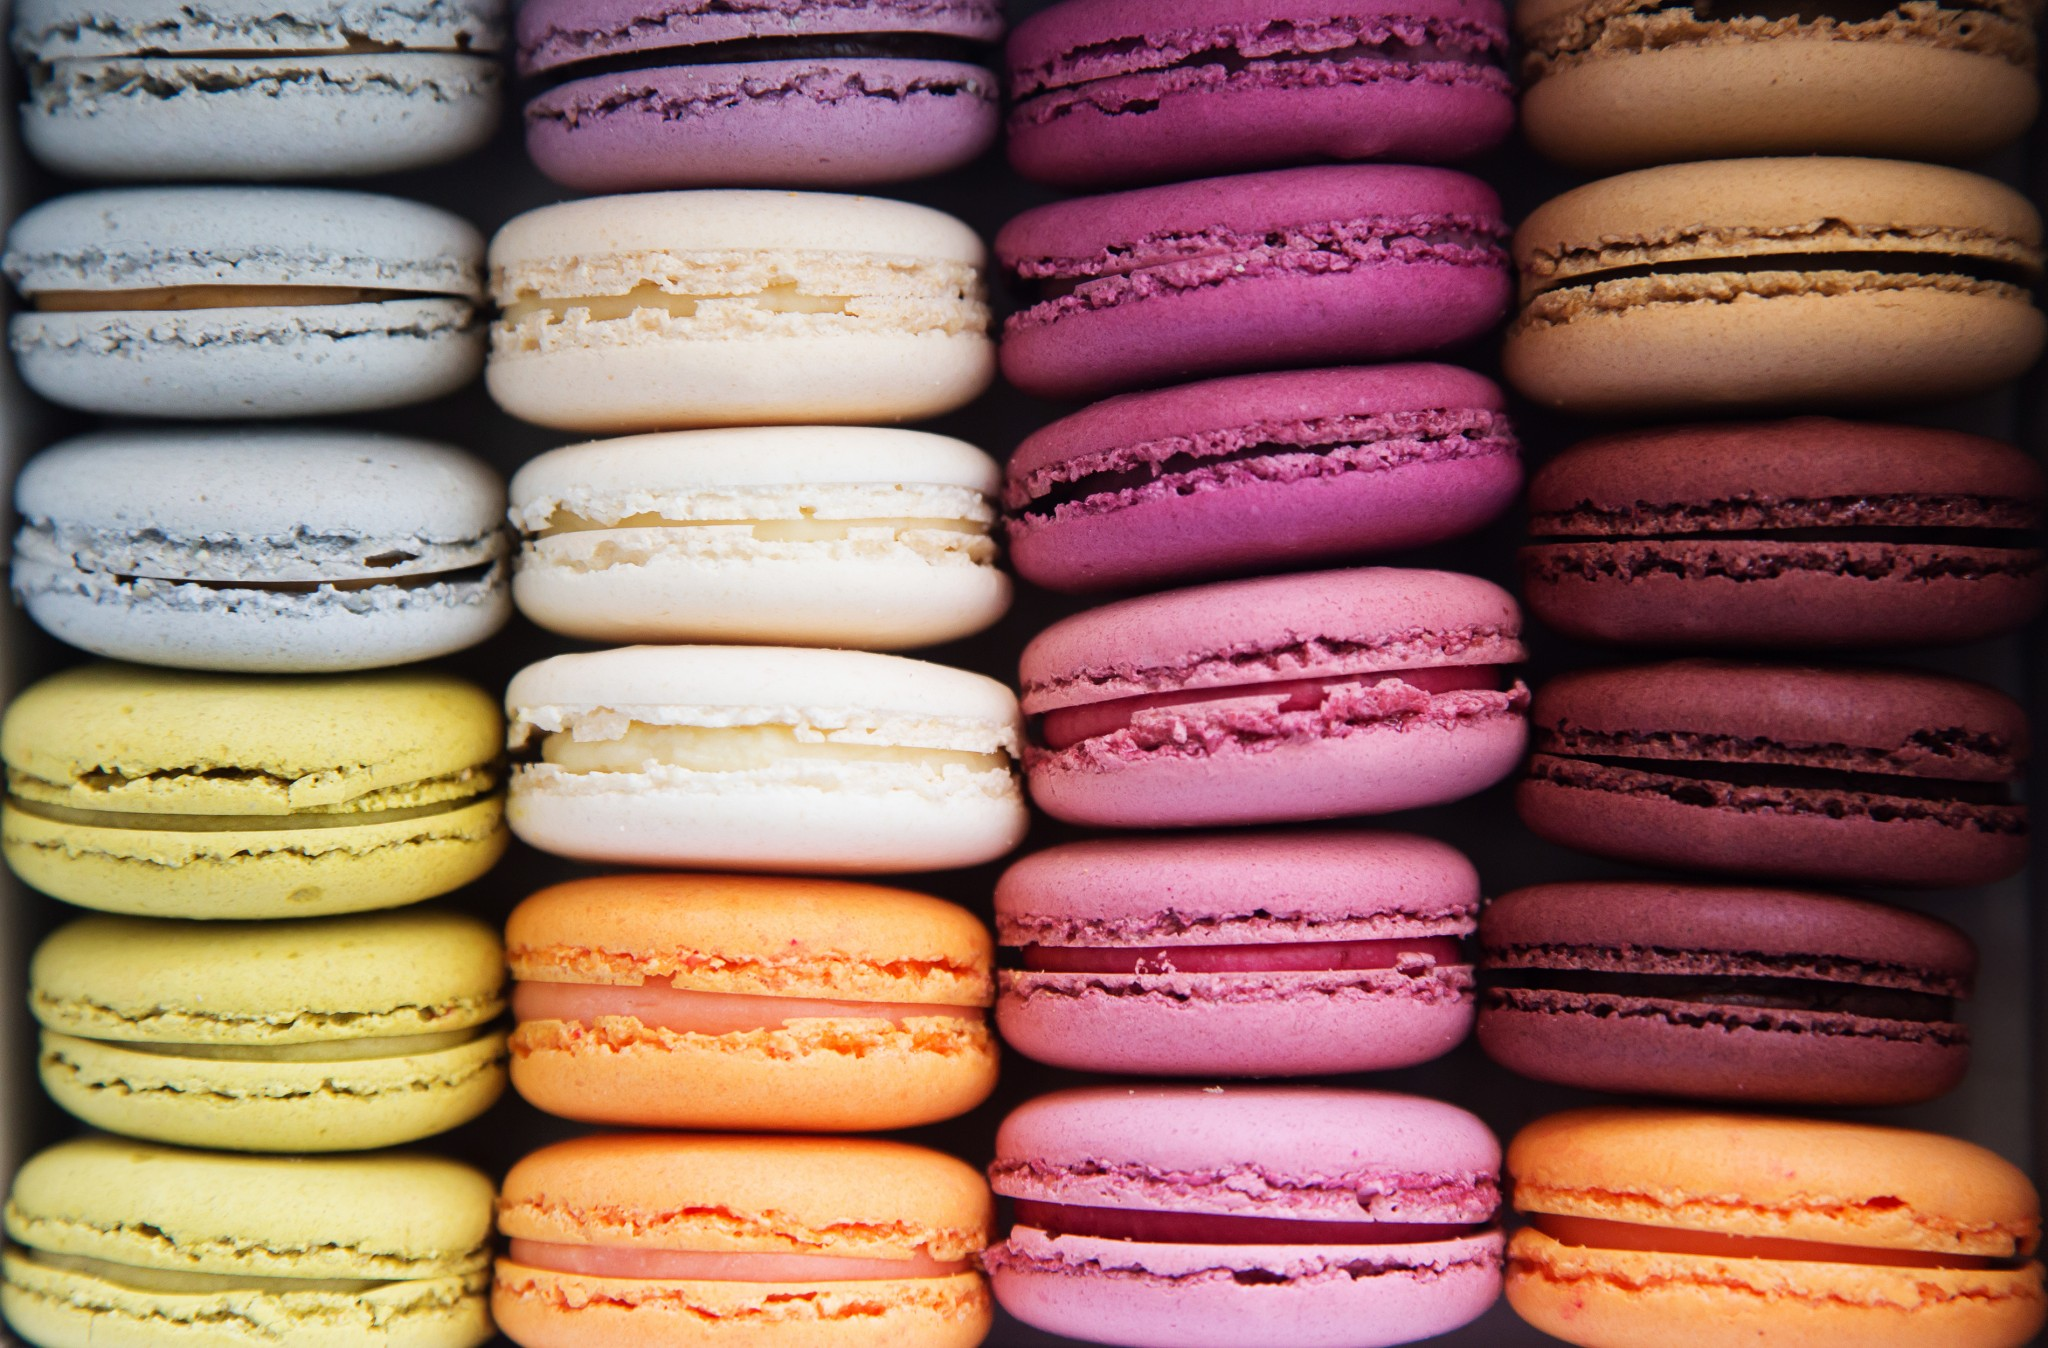 Images of Macaron | 2048x1348